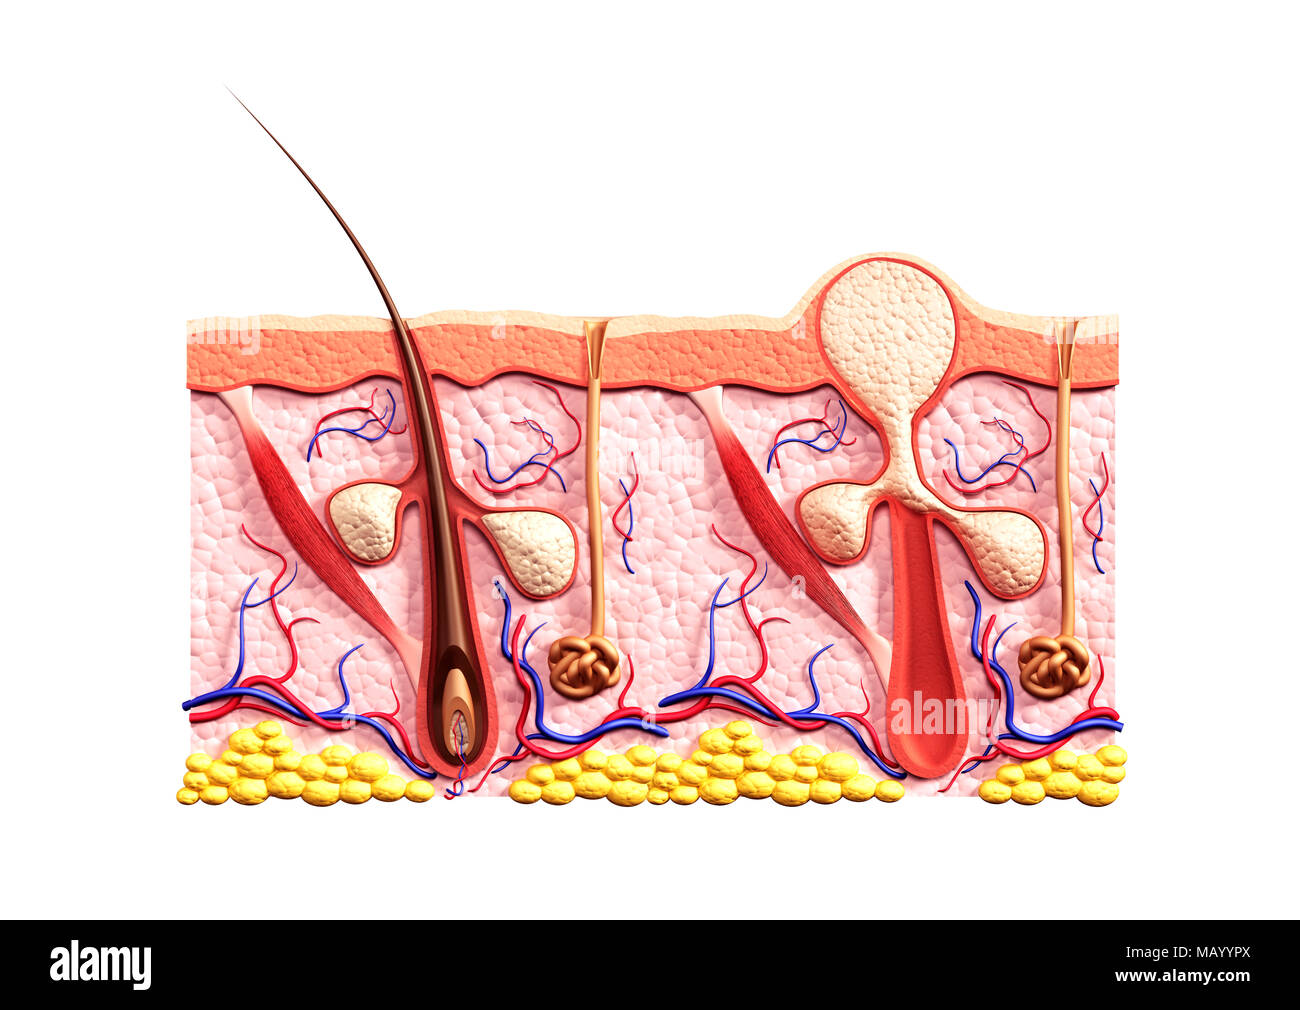 Cross section of skin showing structure of a healthy hair follicle ...